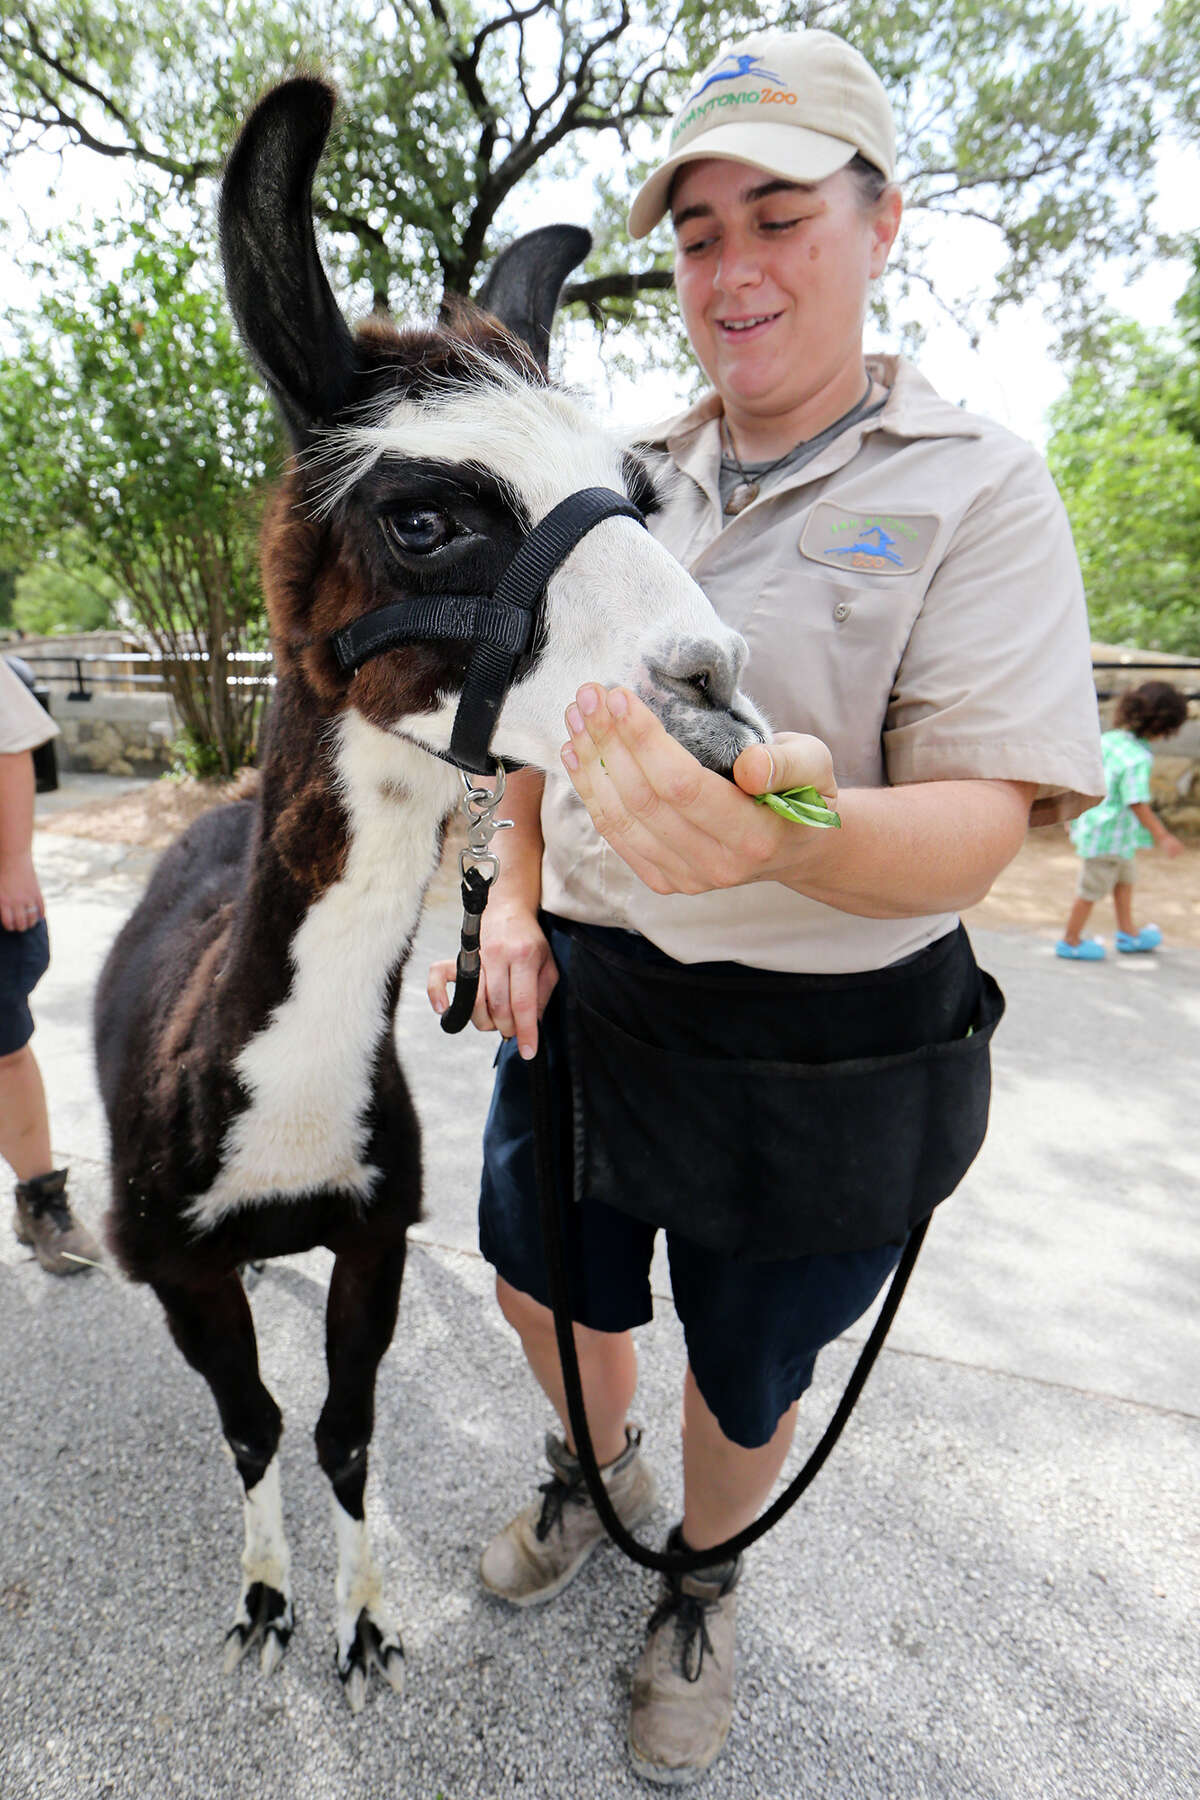 Kuzco the Llama gets a handfull of spinach from Jessica Adam, mammal keeper at the San Antonio Zoo, after a walk through the grounds on Thursday, July, 2, 2015. Kuzco is schuduled to be the lead animal in the Zoo's 4th of July parade. MARVIN PFEIFFER/ mpfeiffer@express-news.net